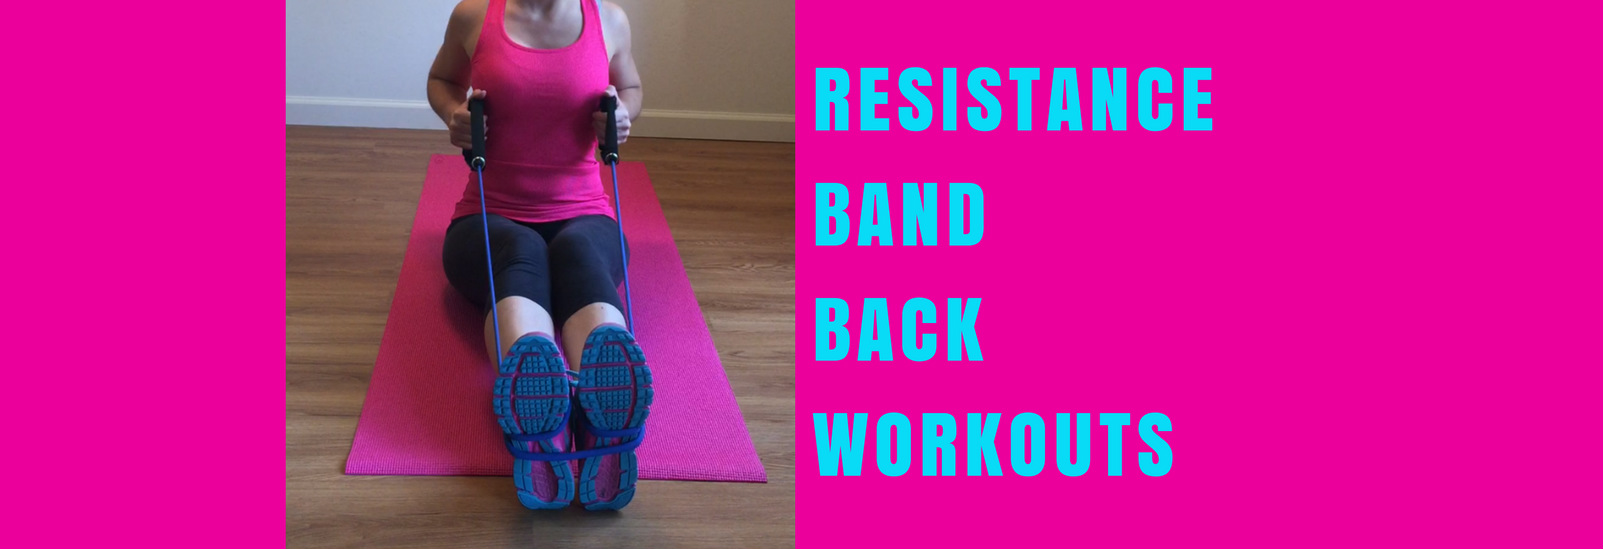 Resistance band back workouts